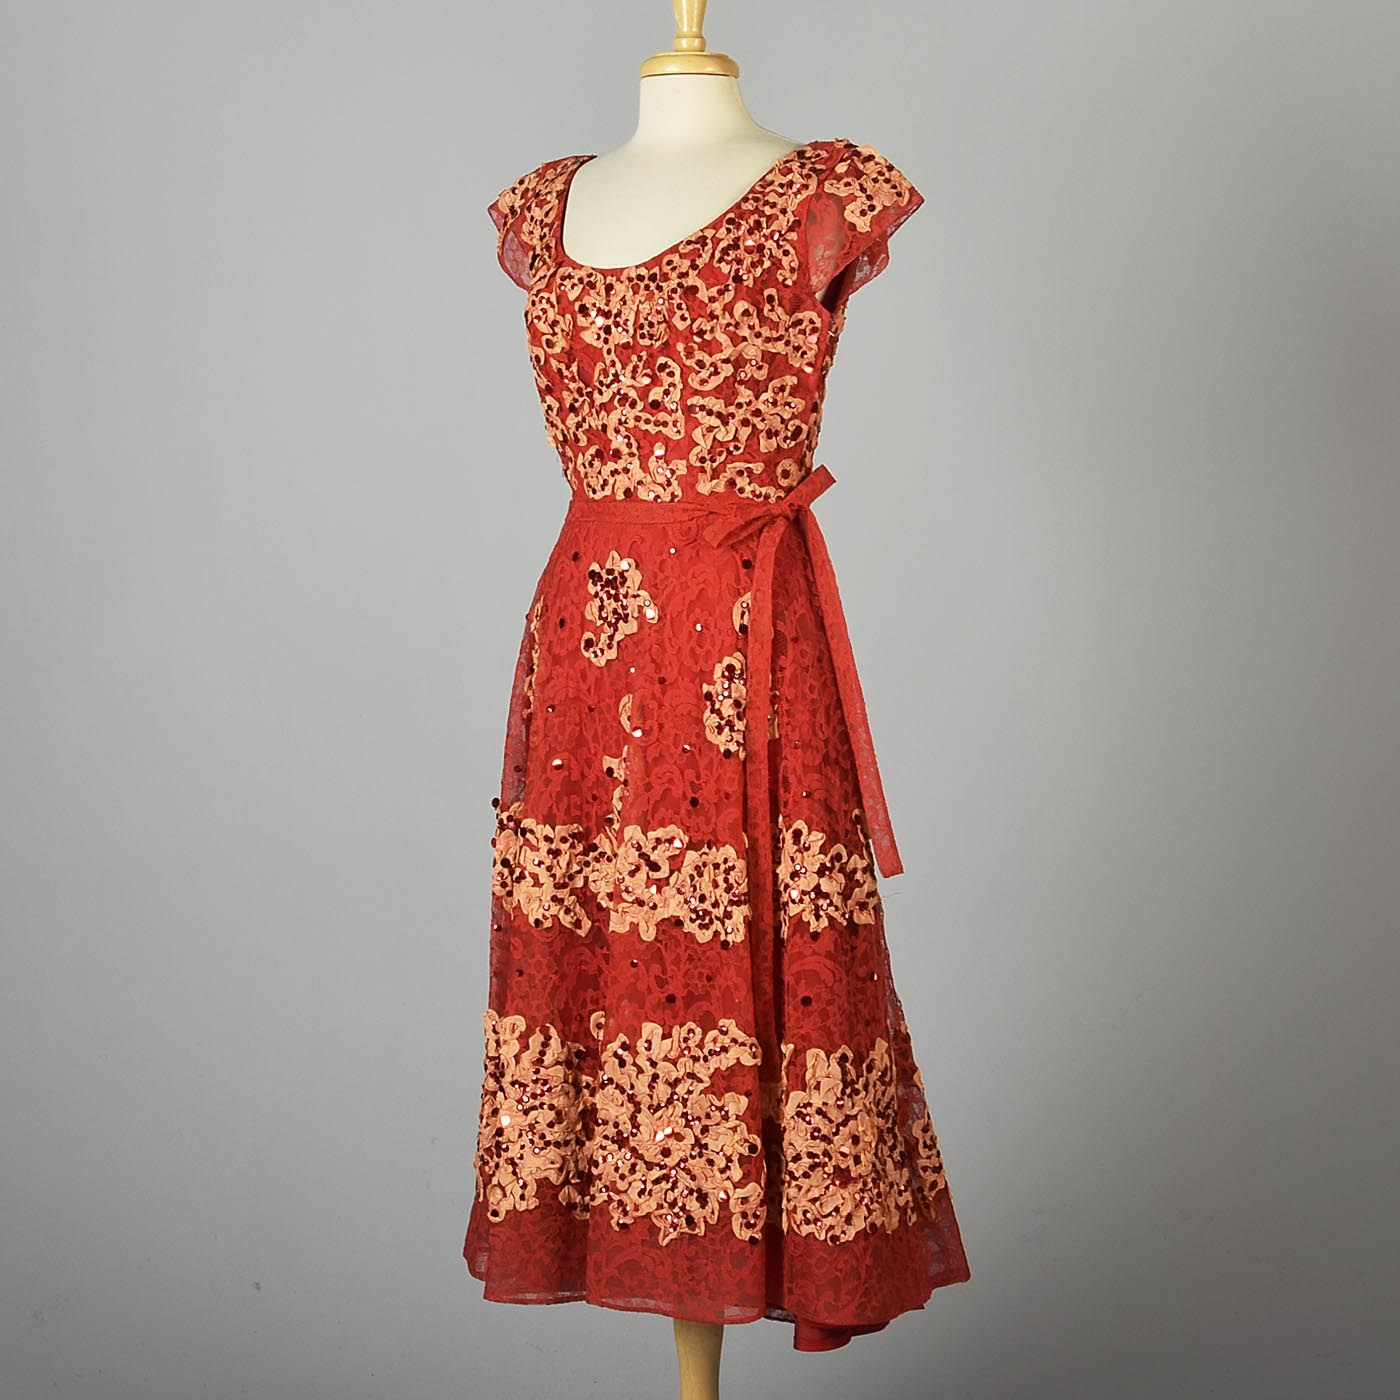 1940s Red Lace Fit & Flare Party Dress by Patric of Miss America